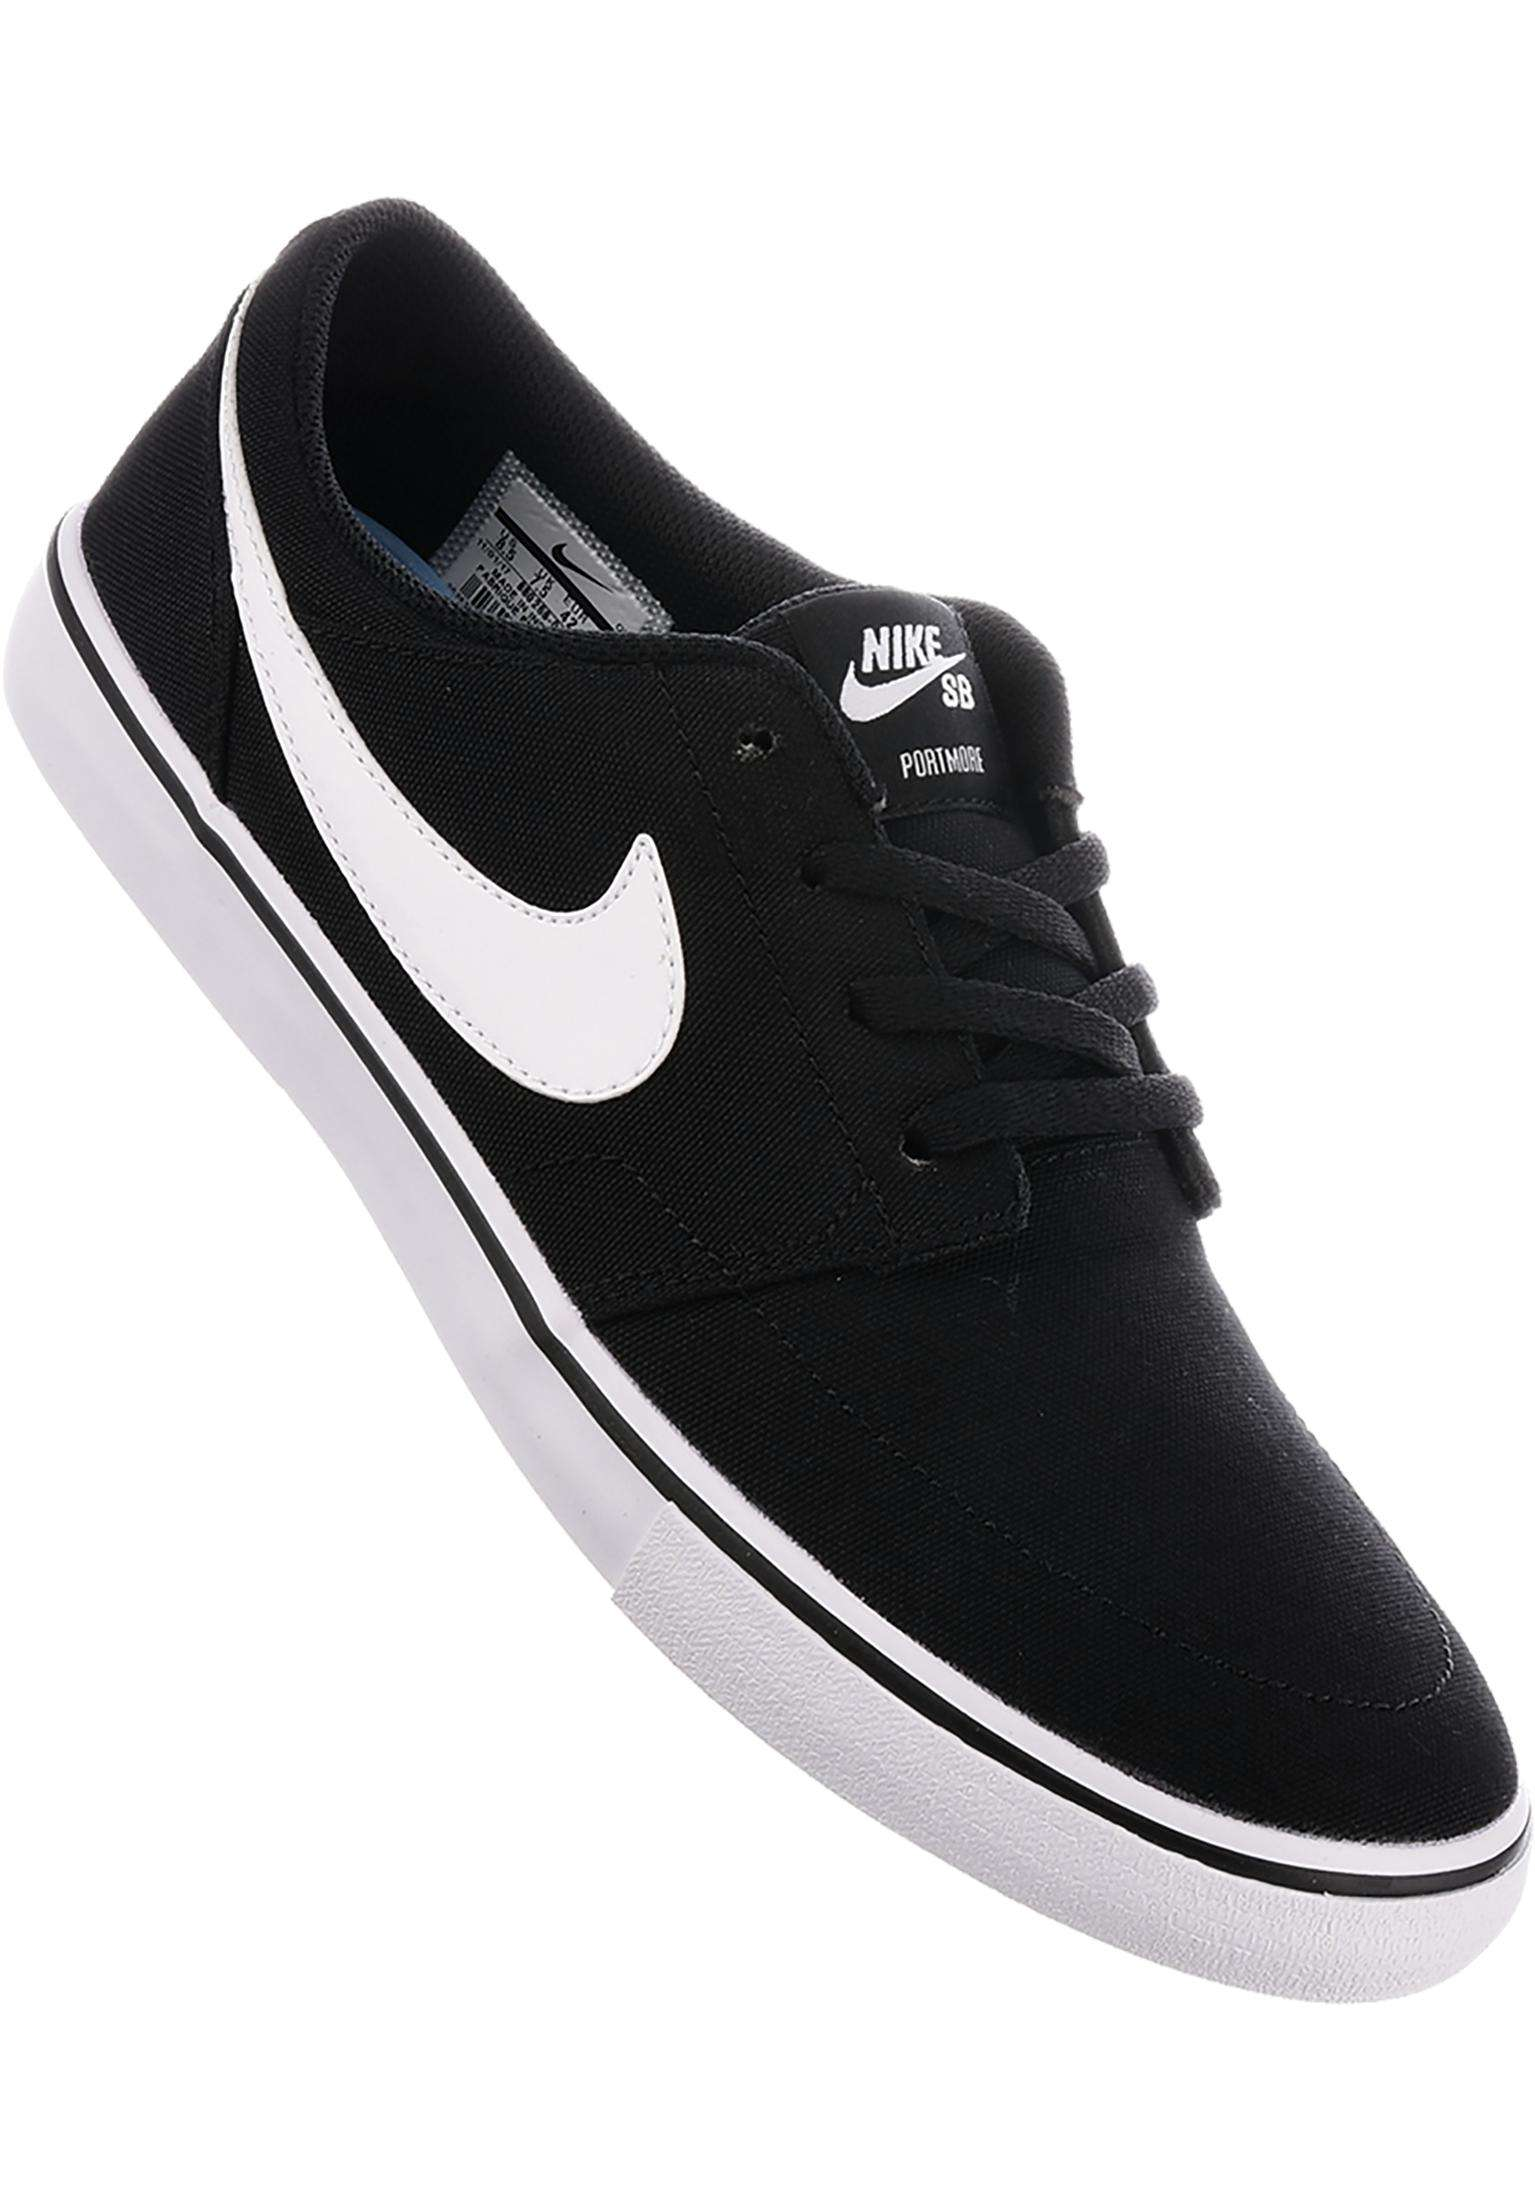 new style 5efc4 541e0 Solarsoft Portmore II CNVS Nike SB All Shoes in black-white for Men   Titus